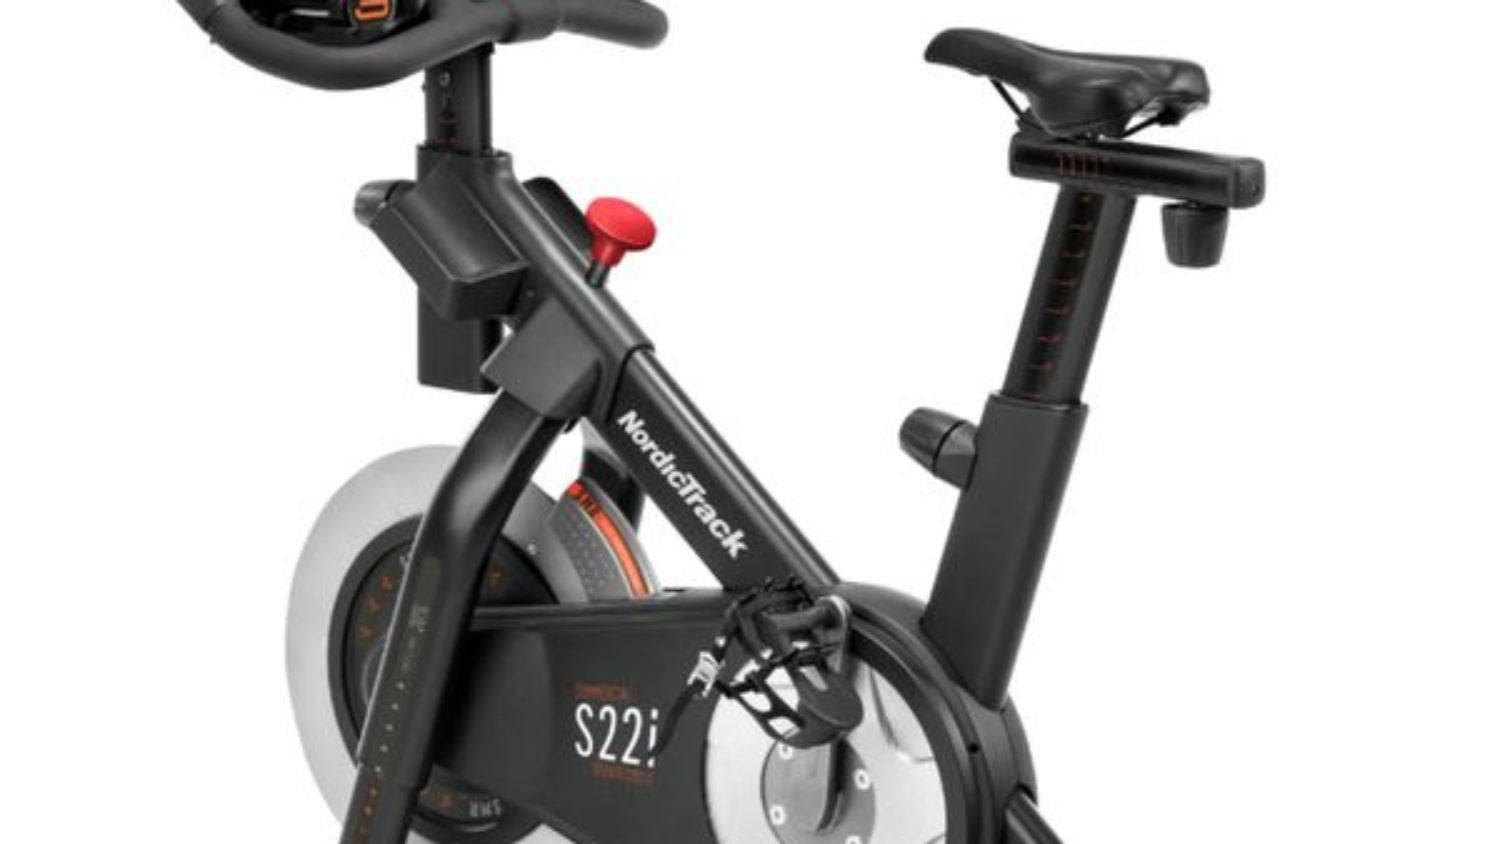 27,000 Peloton Bikes / Components Get Recalled Due To Injuries